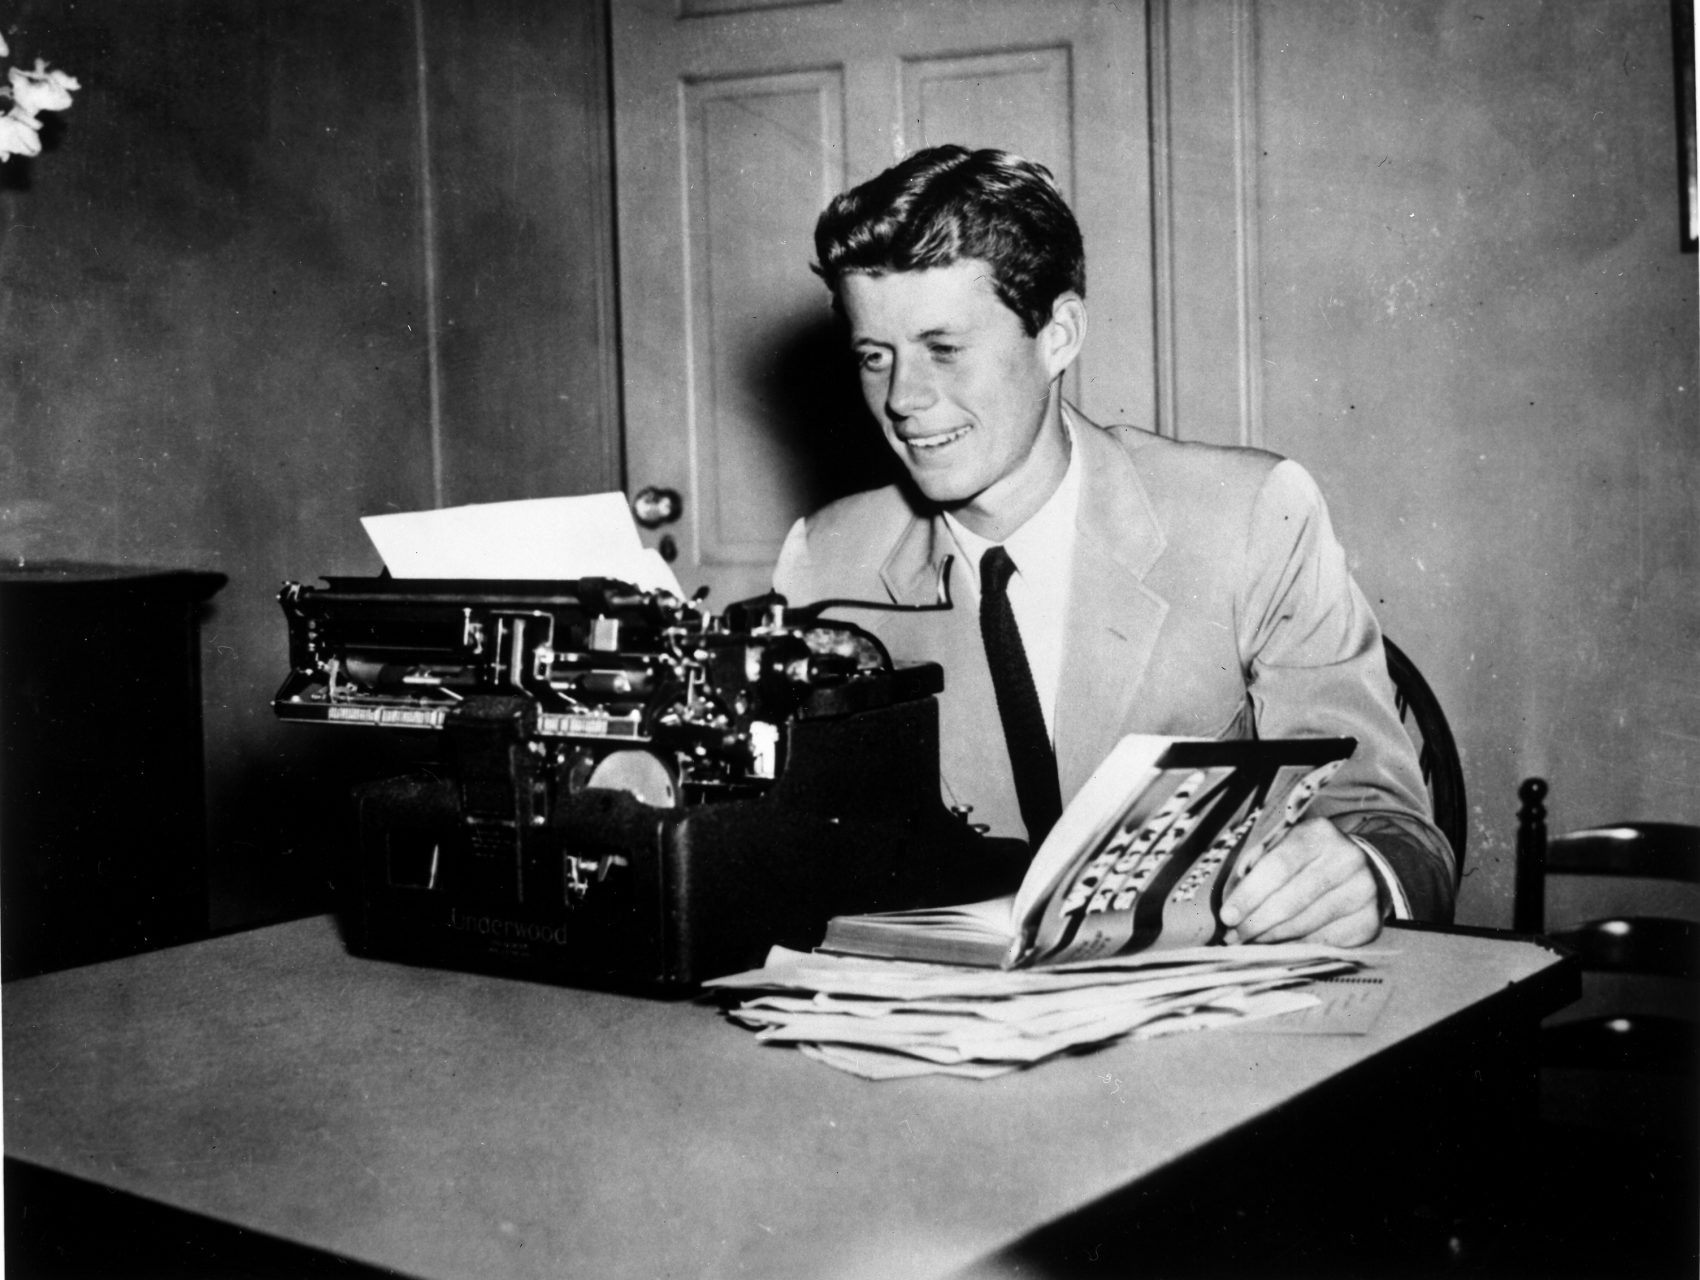 jfk years in office. John F. Kennedy At A Typewriter With His Book \ Jfk Years In Office